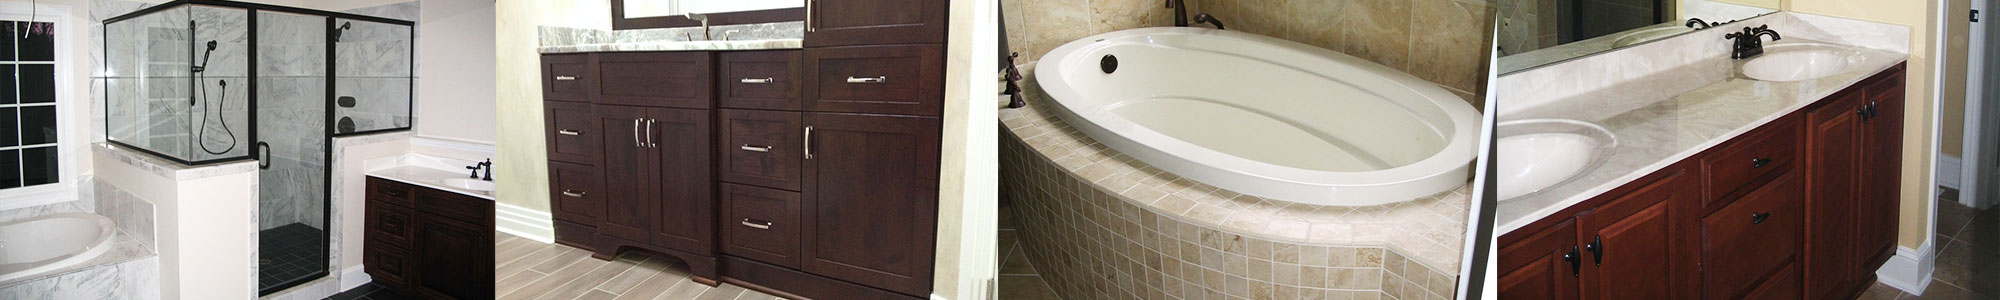 Bathroom And Kitchen Remodeling Raleigh. Bathrooms